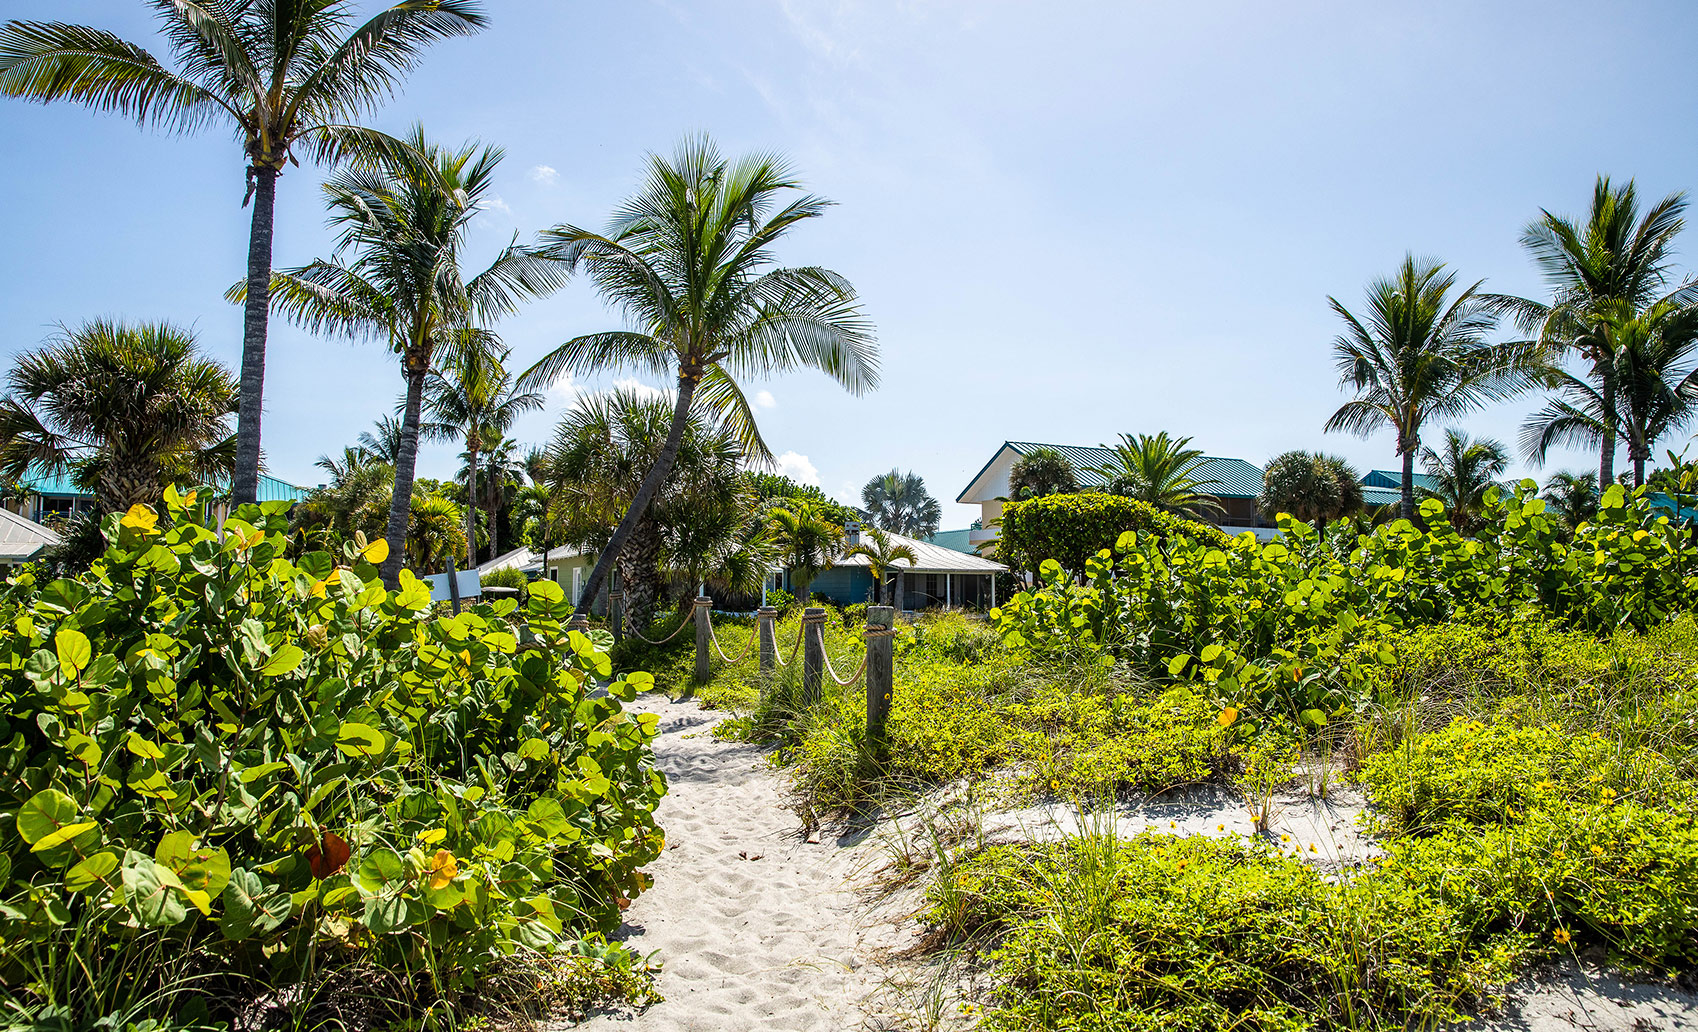 Best Places to visit in Florida, Captiva Island